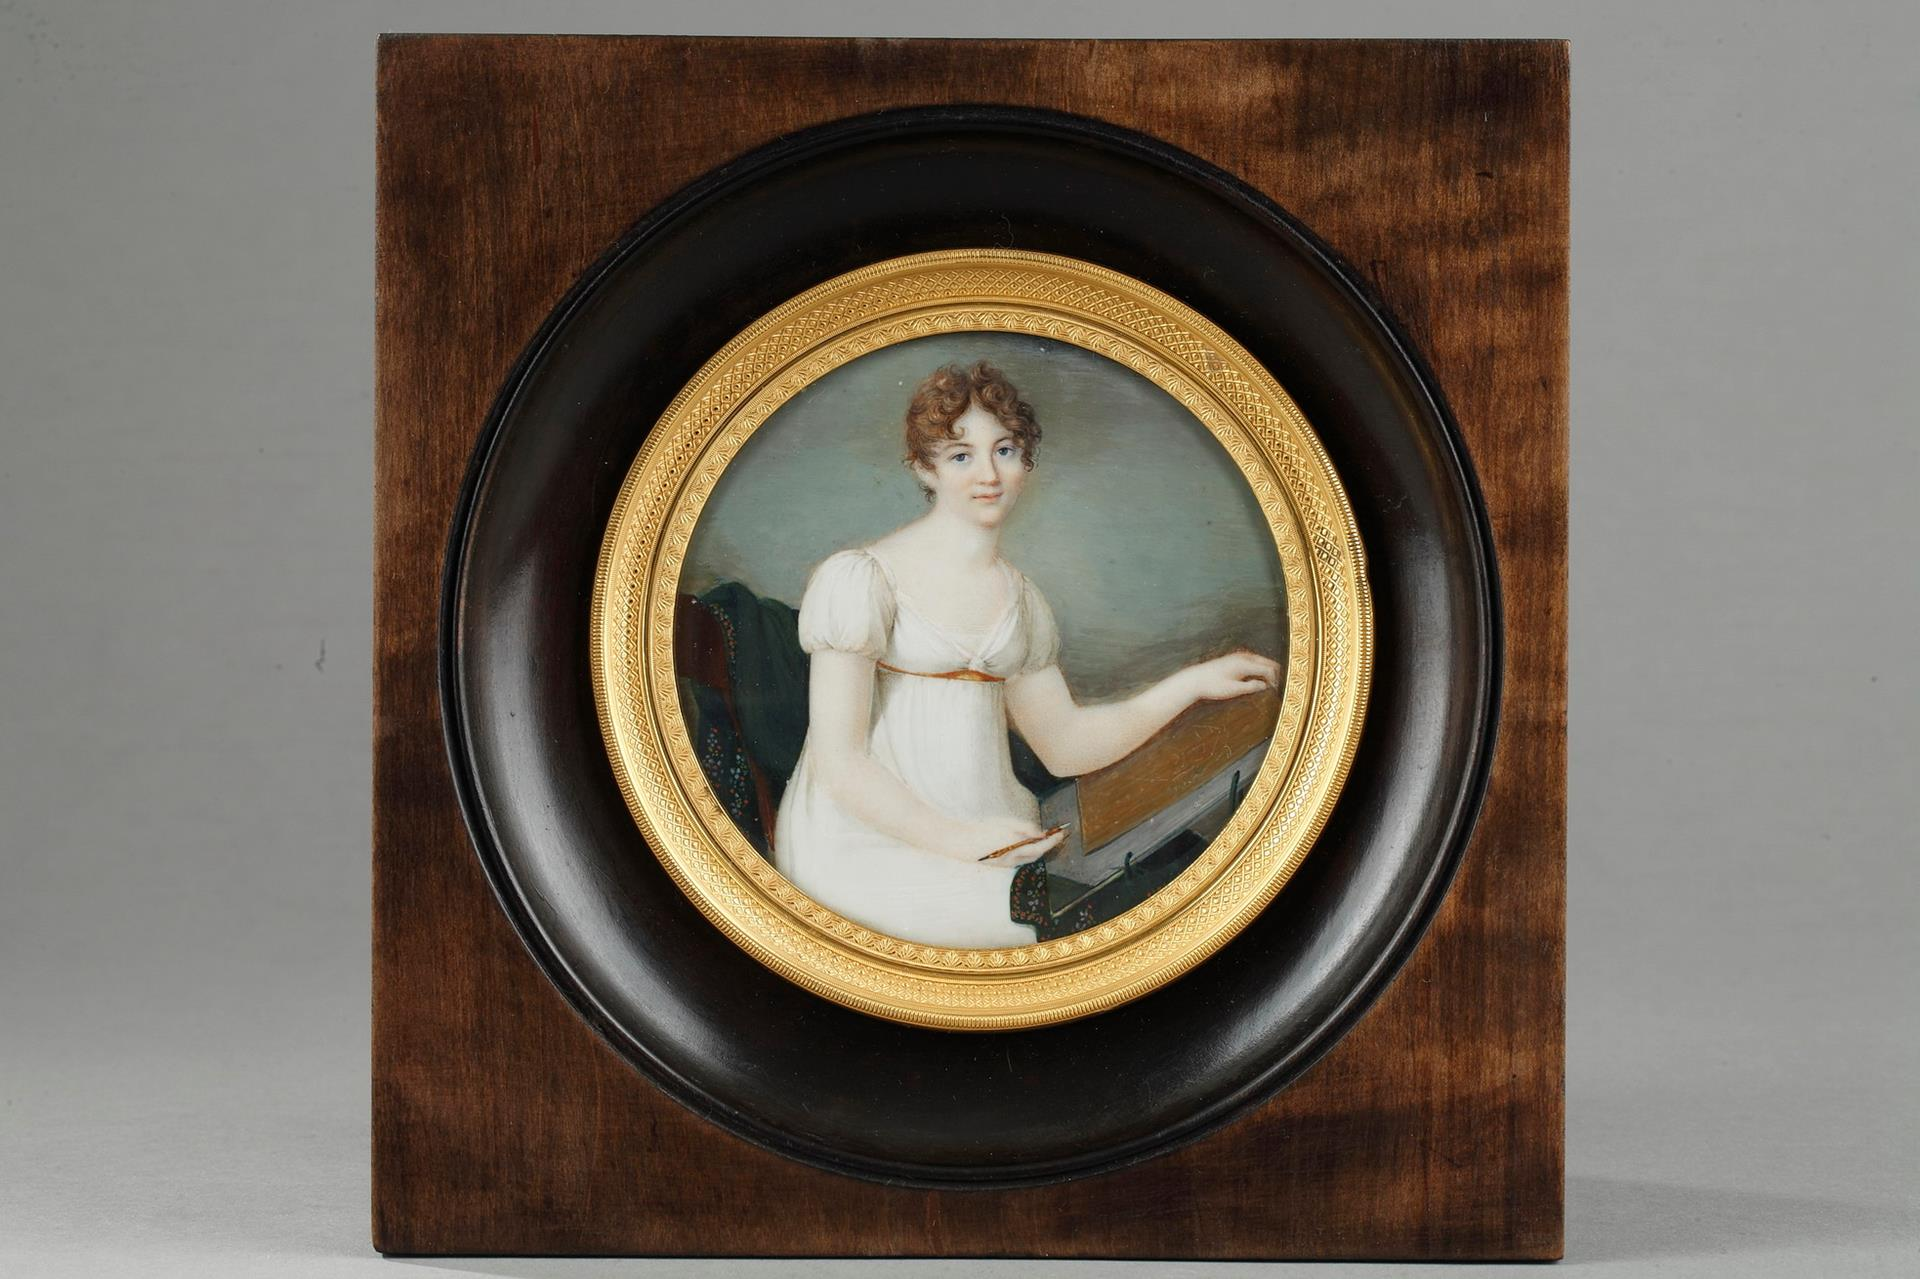 Miniature on Ivory. Portrait of A Young Woman. Circa 1815-1820